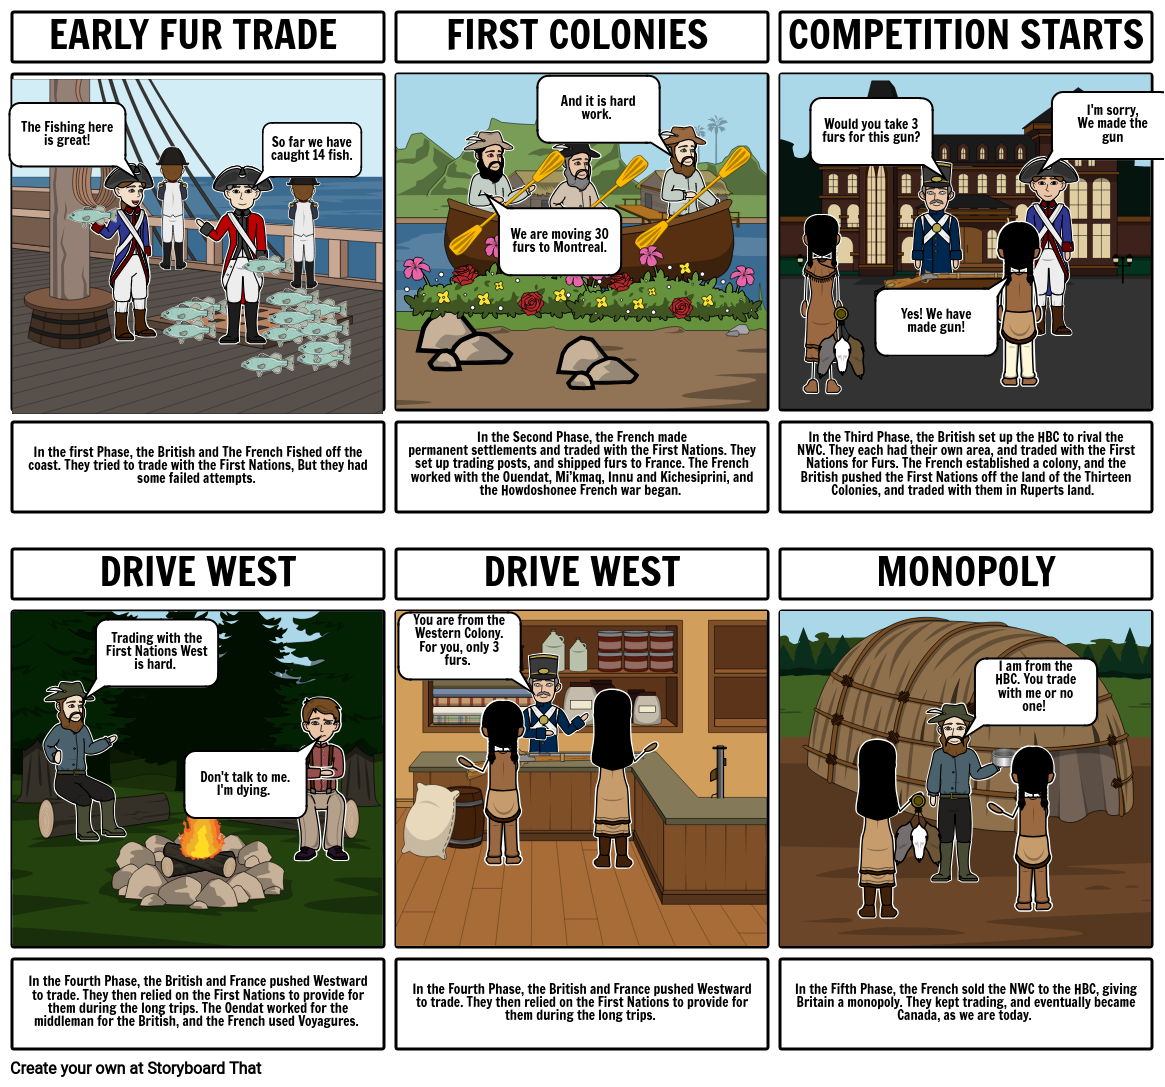 Social Phases of Fur Trade